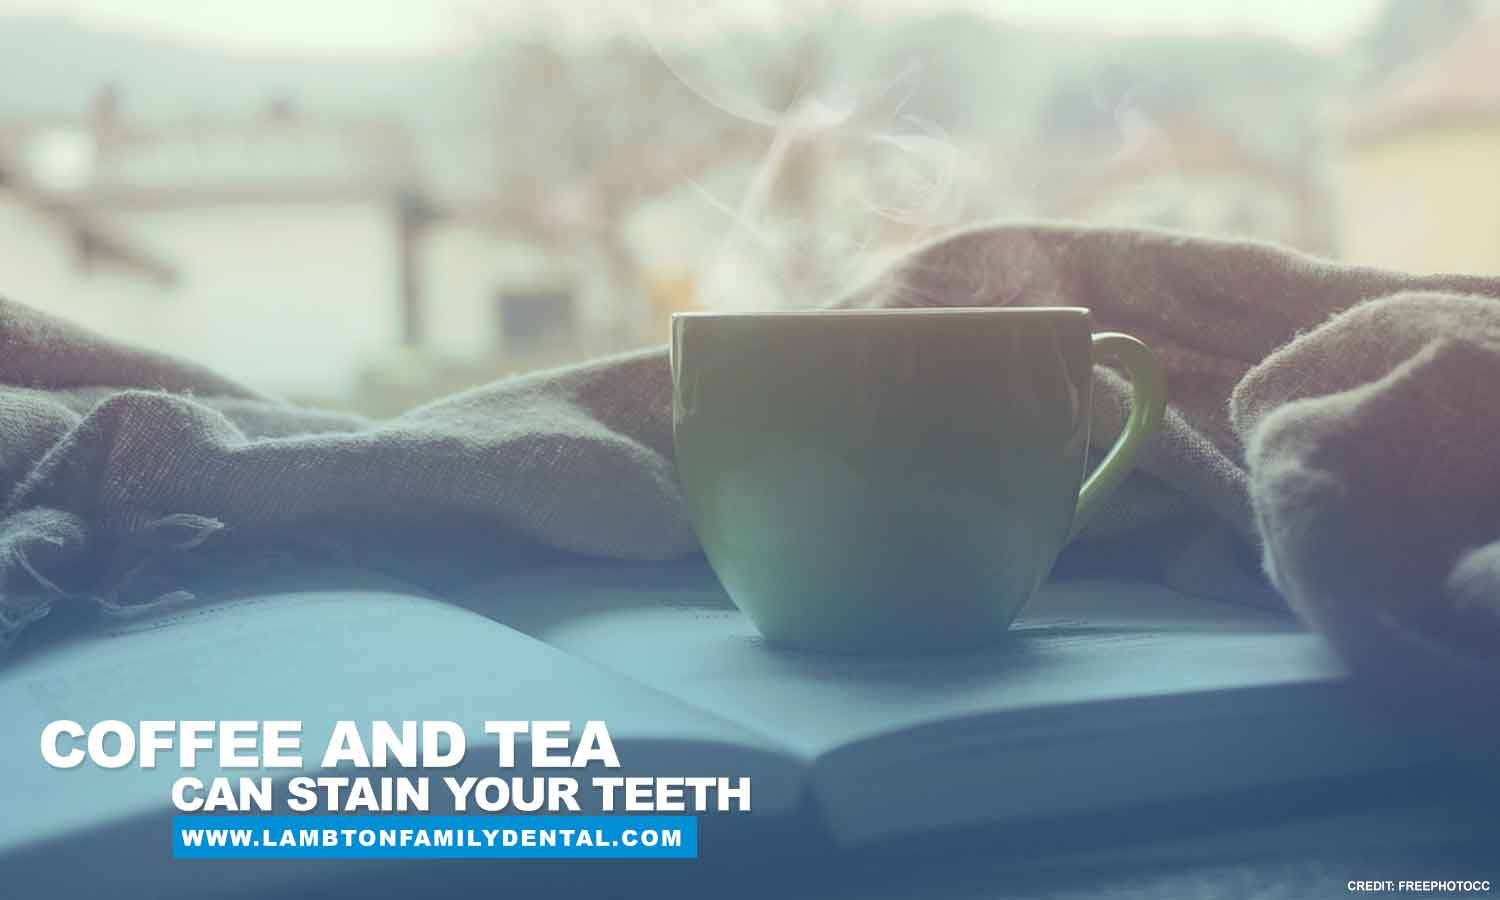 Coffee and tea can stain your teeth